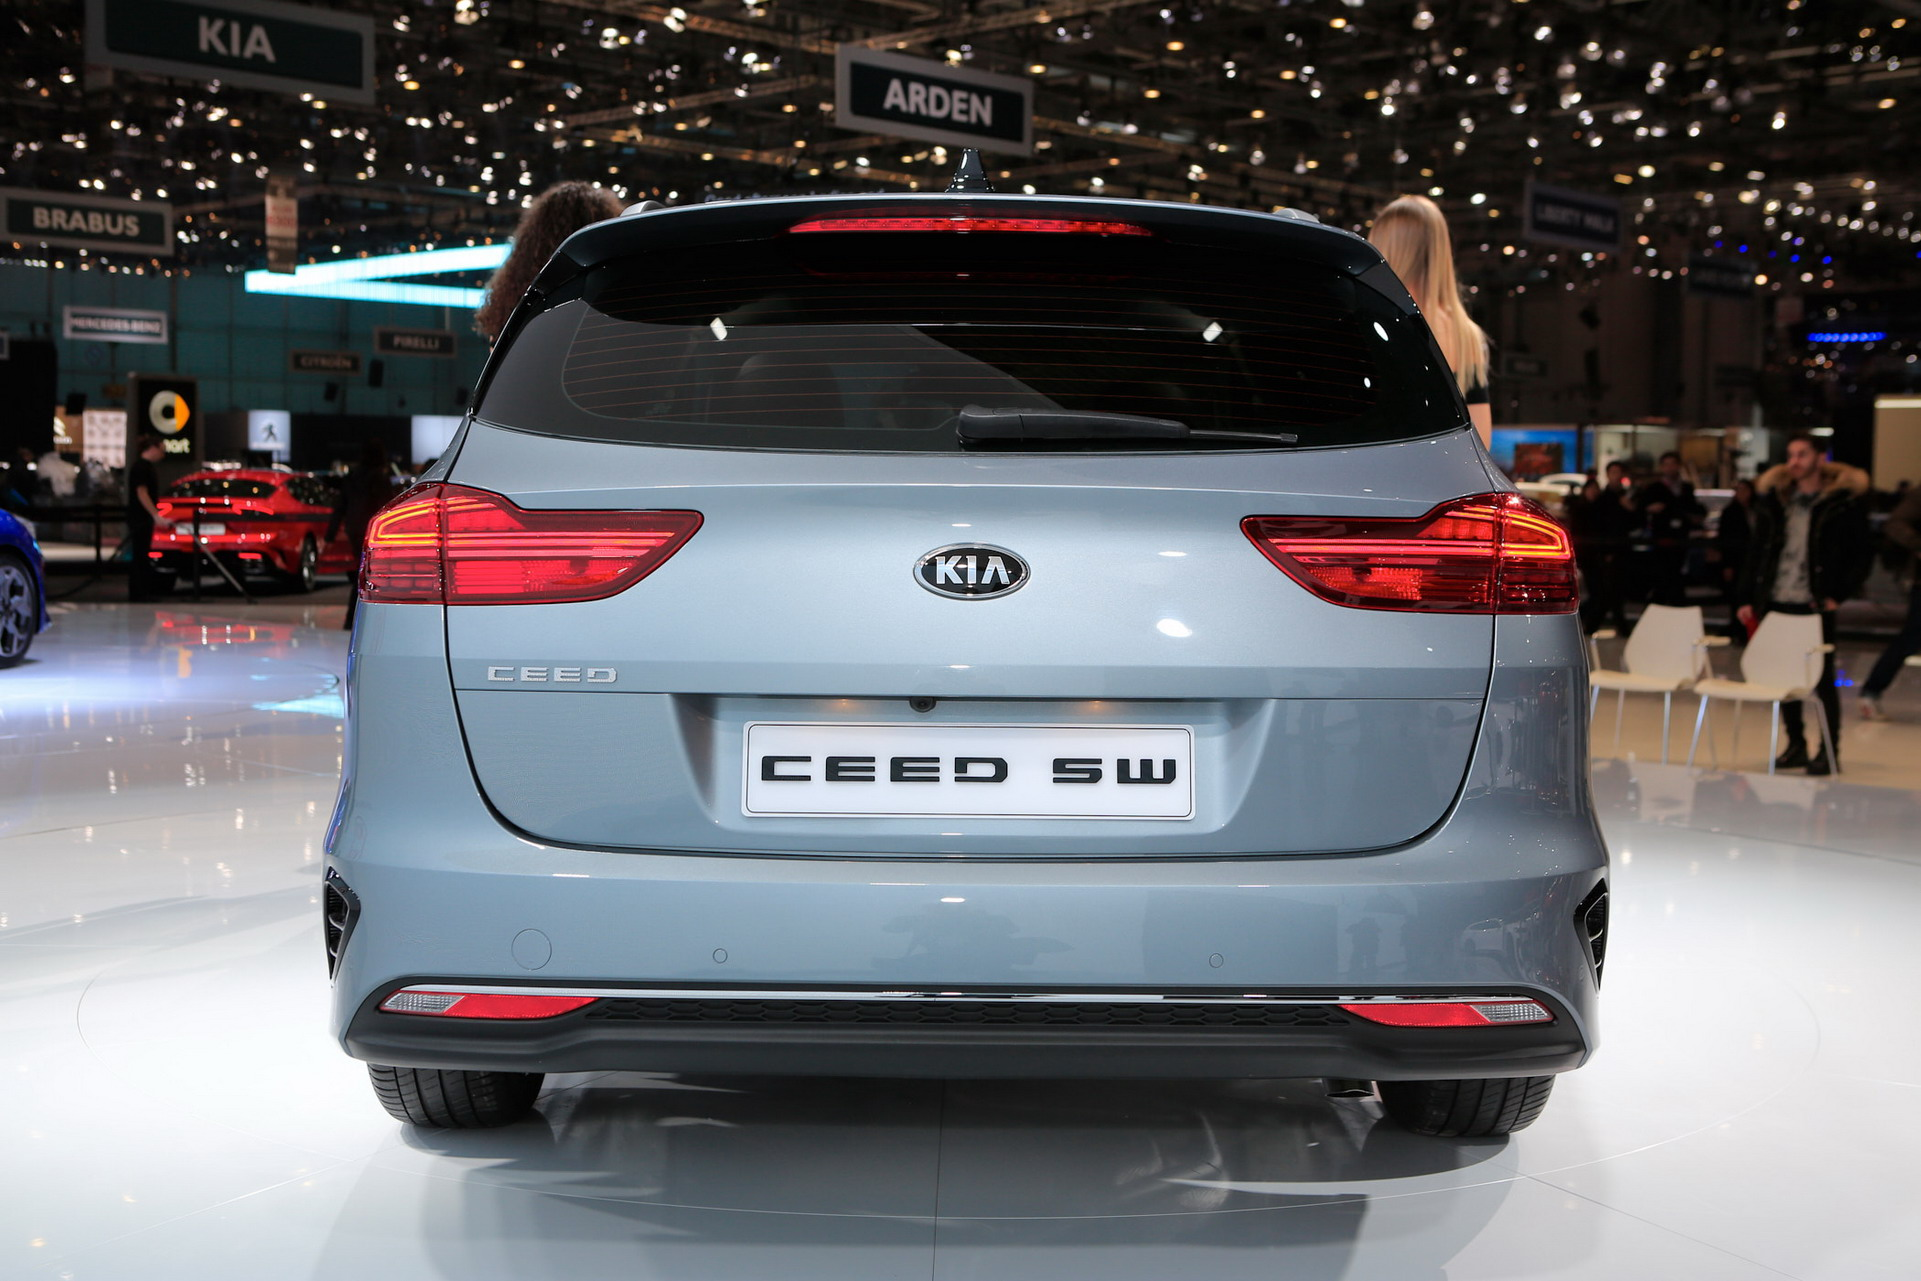 Vwvortex Com 2019 Kia Ceed Sportswagon Revealed In Geneva With Some Very Bmw Ish Taillights